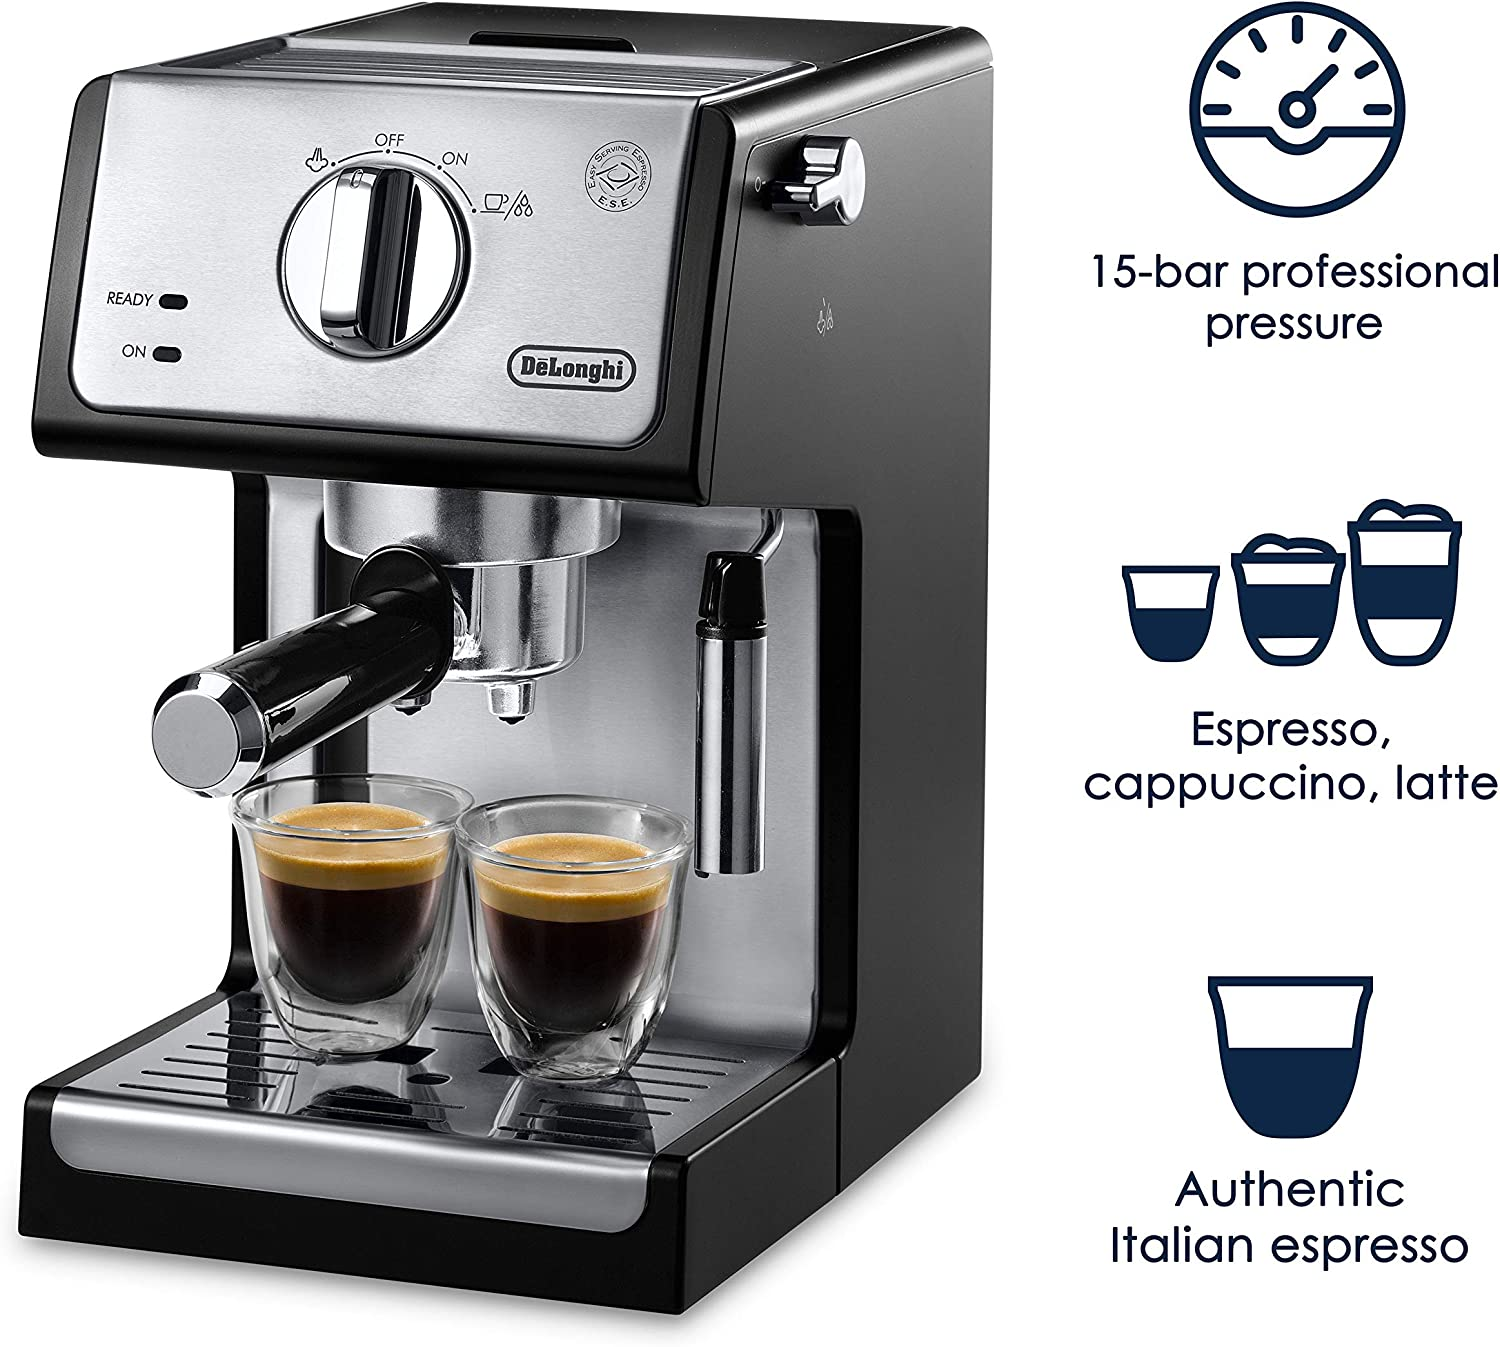 DeLonghi ECP3420 15 Bar Pump Espresso and Cappuccino Machine, Black by DeLonghi: Amazon.es: Hogar